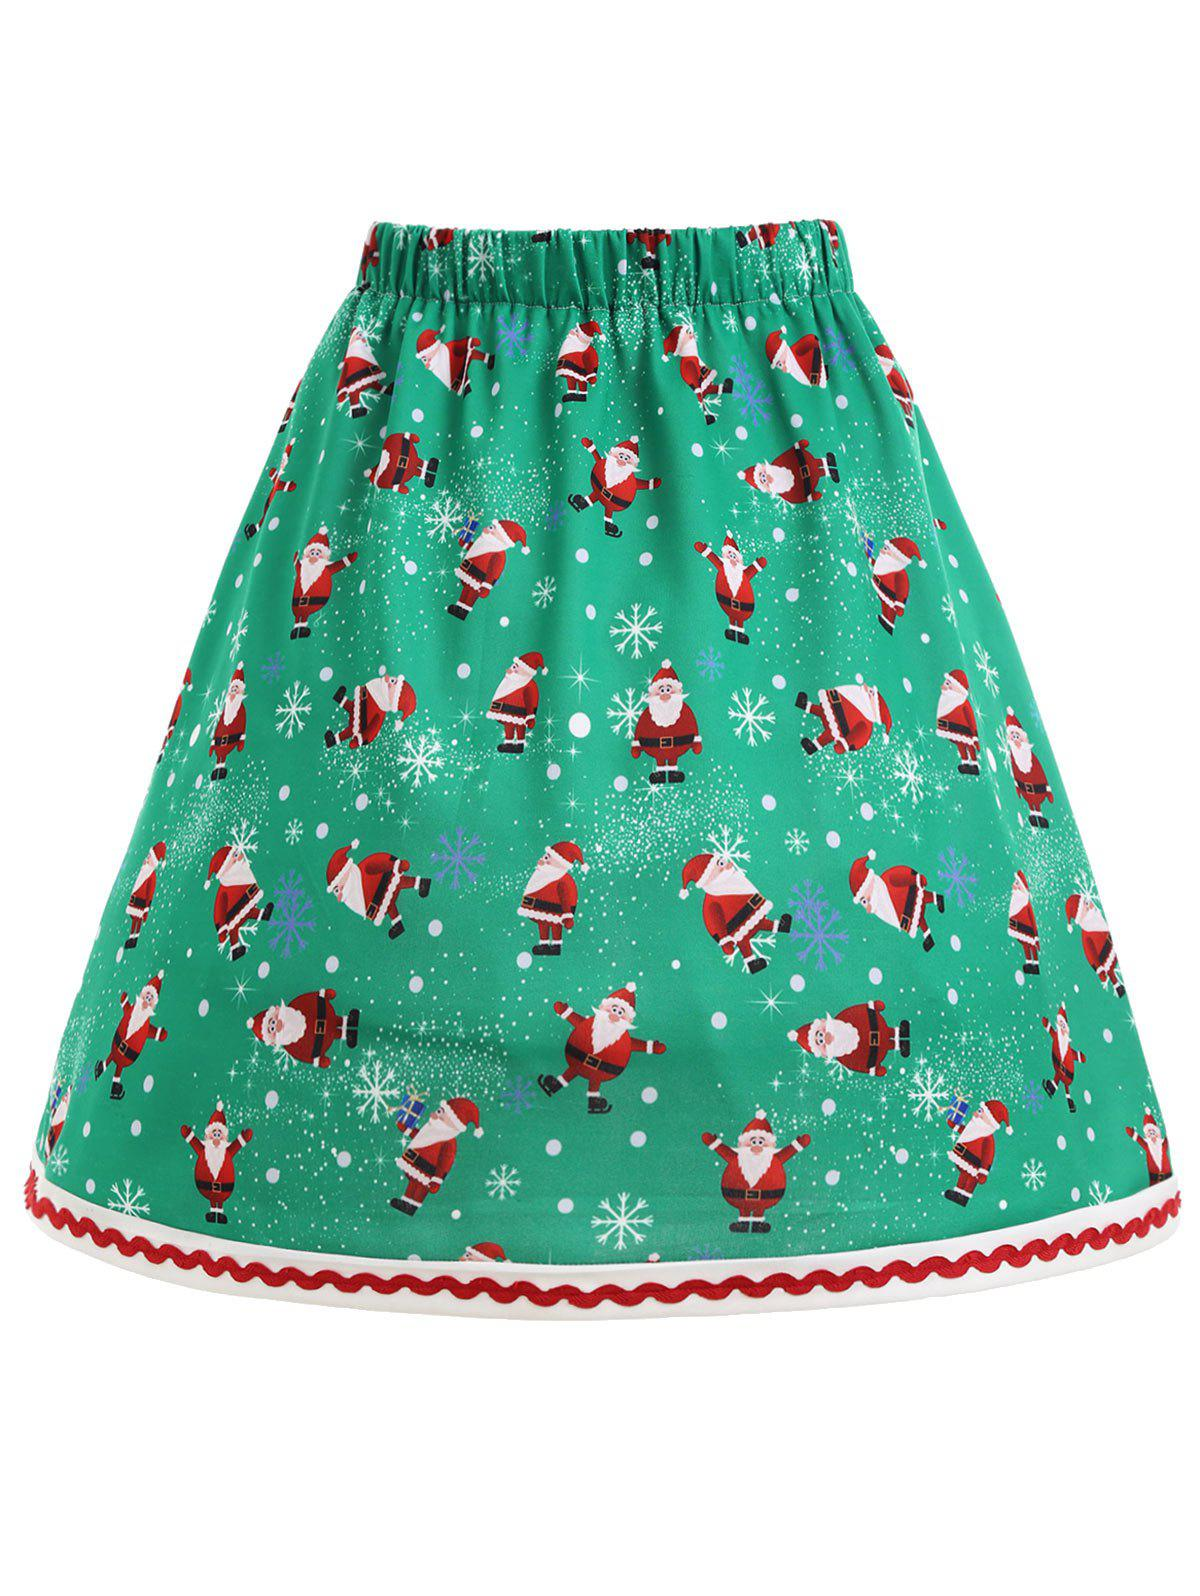 Plus Size Christmas Santa Claus Snowflake SkirtWOMEN<br><br>Size: 3XL; Color: GREEN; Material: Polyester; Length: Knee-Length; Silhouette: A-Line; Pattern Type: Print; Season: Fall,Spring,Winter; With Belt: No; Weight: 0.3300kg; Package Contents: 1 x Skirt;